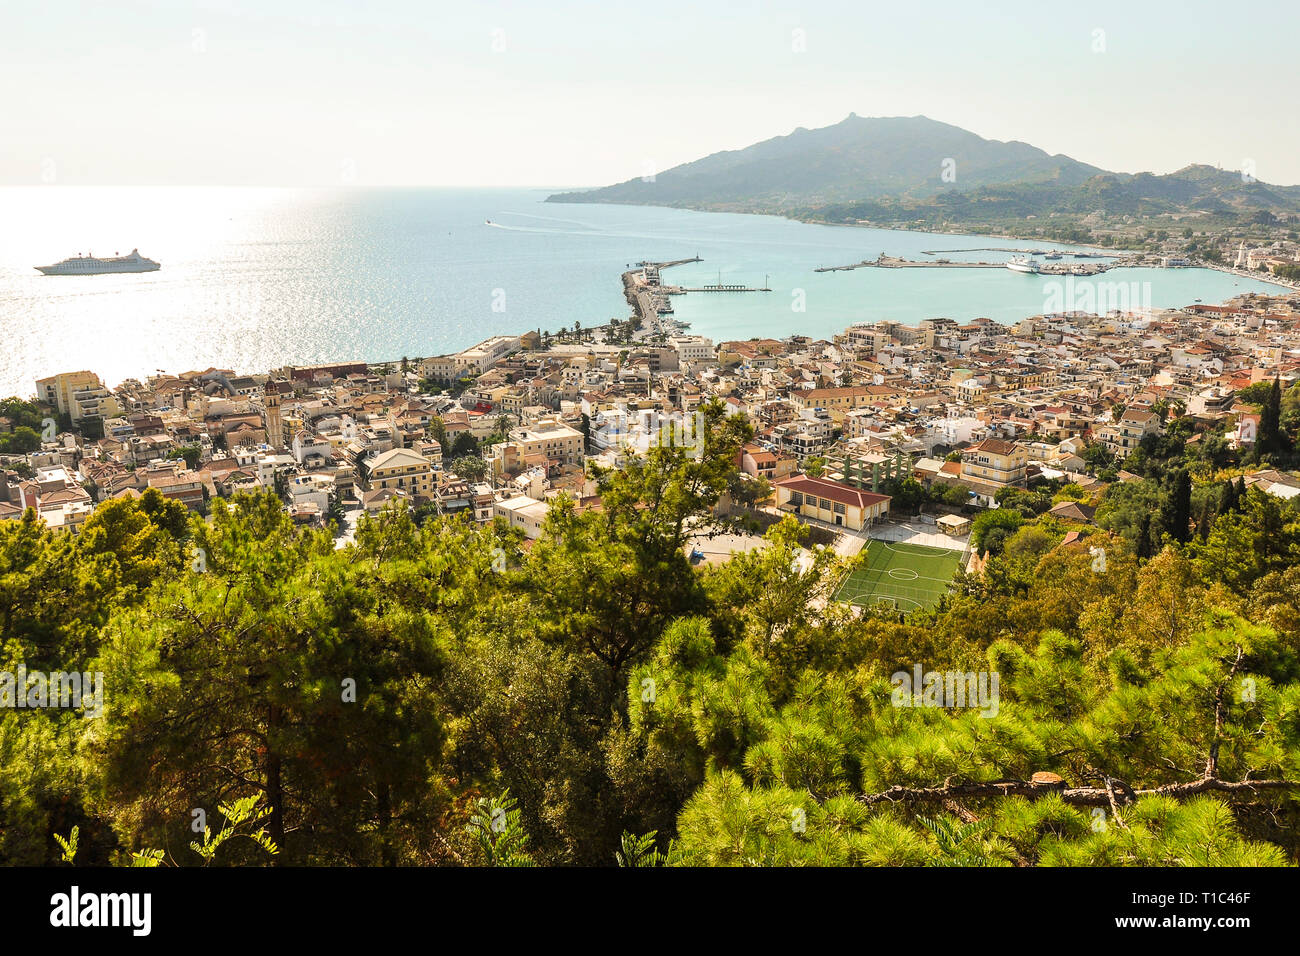 Beautiful and colorful landscape of Zakynthos in Greece. View on harbor, boats at sea and resort, with hill in the background. Zante Island. - Stock Image